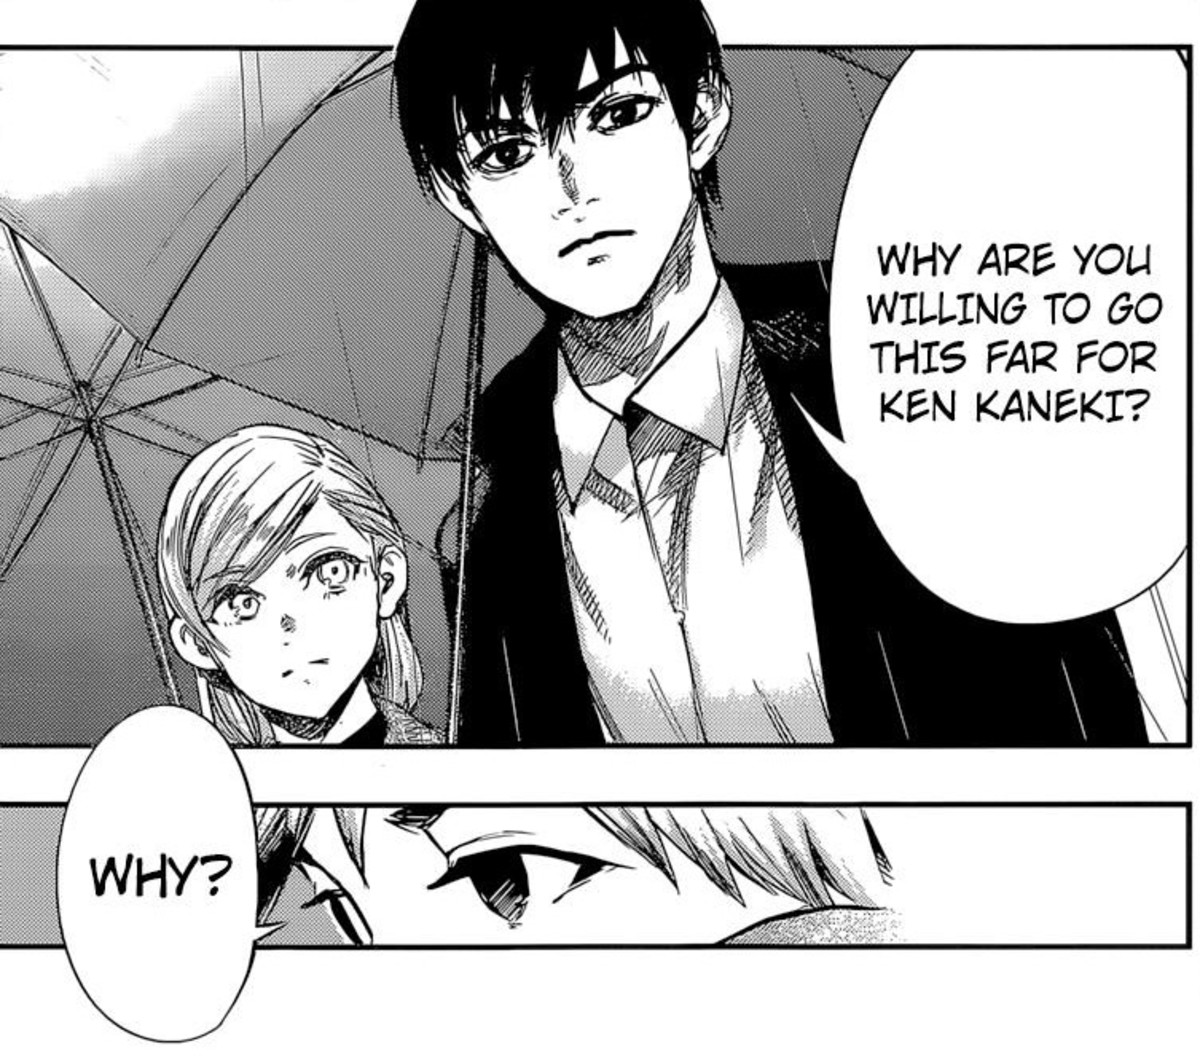 Amon asks Hide why he is going so far for Kaneki.